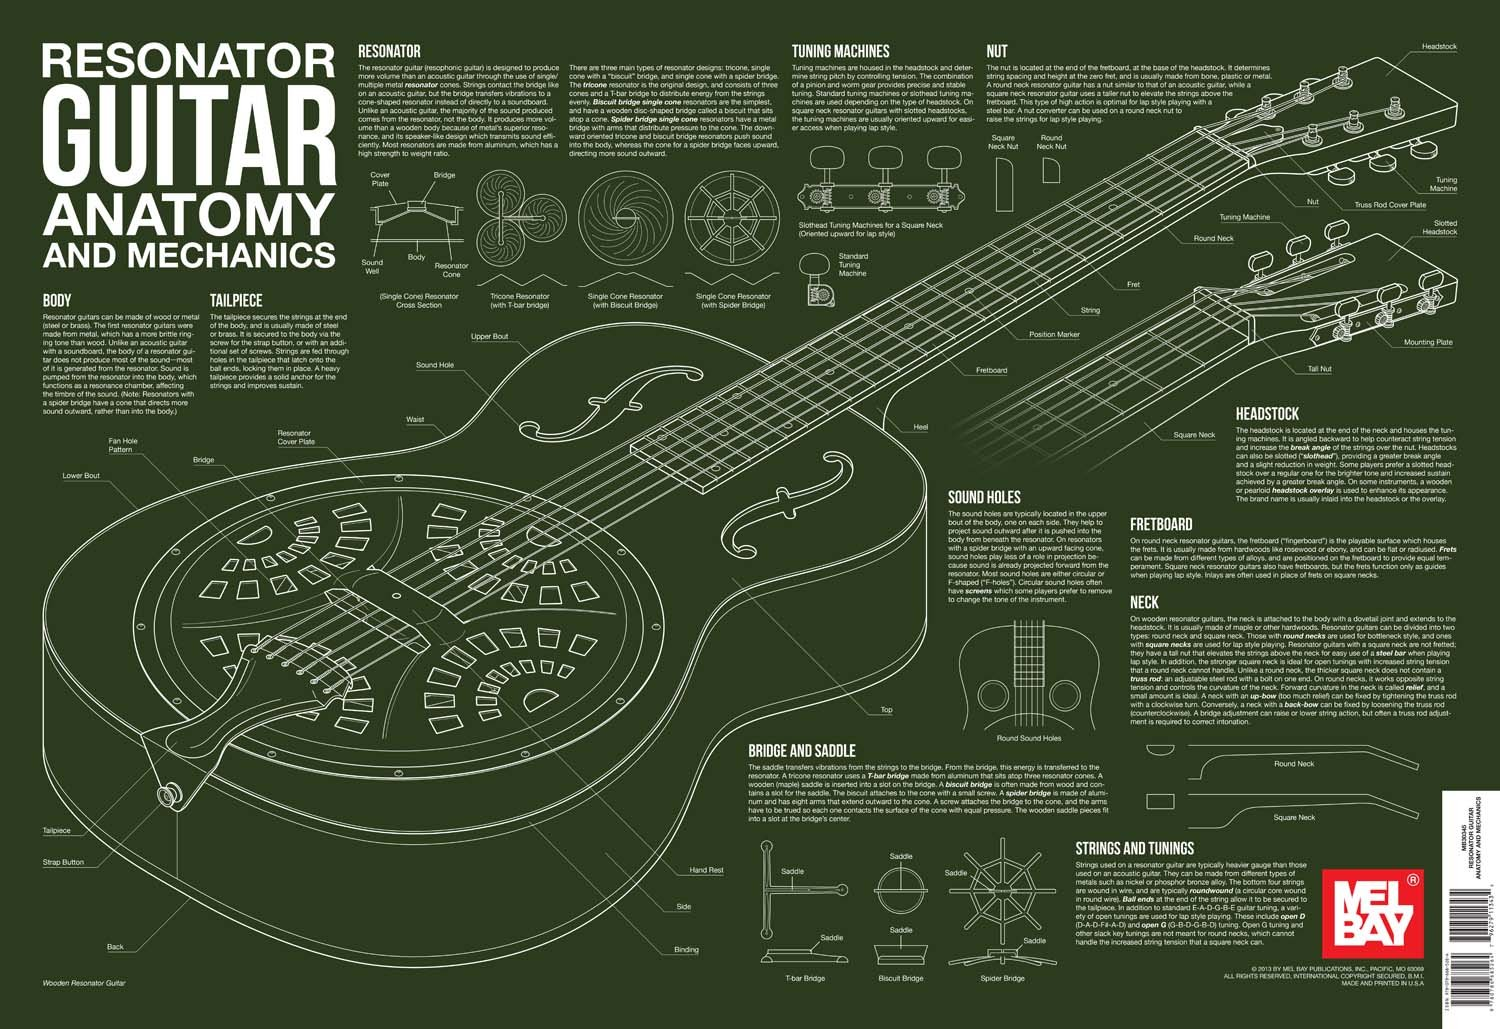 Resonator Guitar Anatomy and Mechanics Wall Chart Anatomy Wall Chart ...